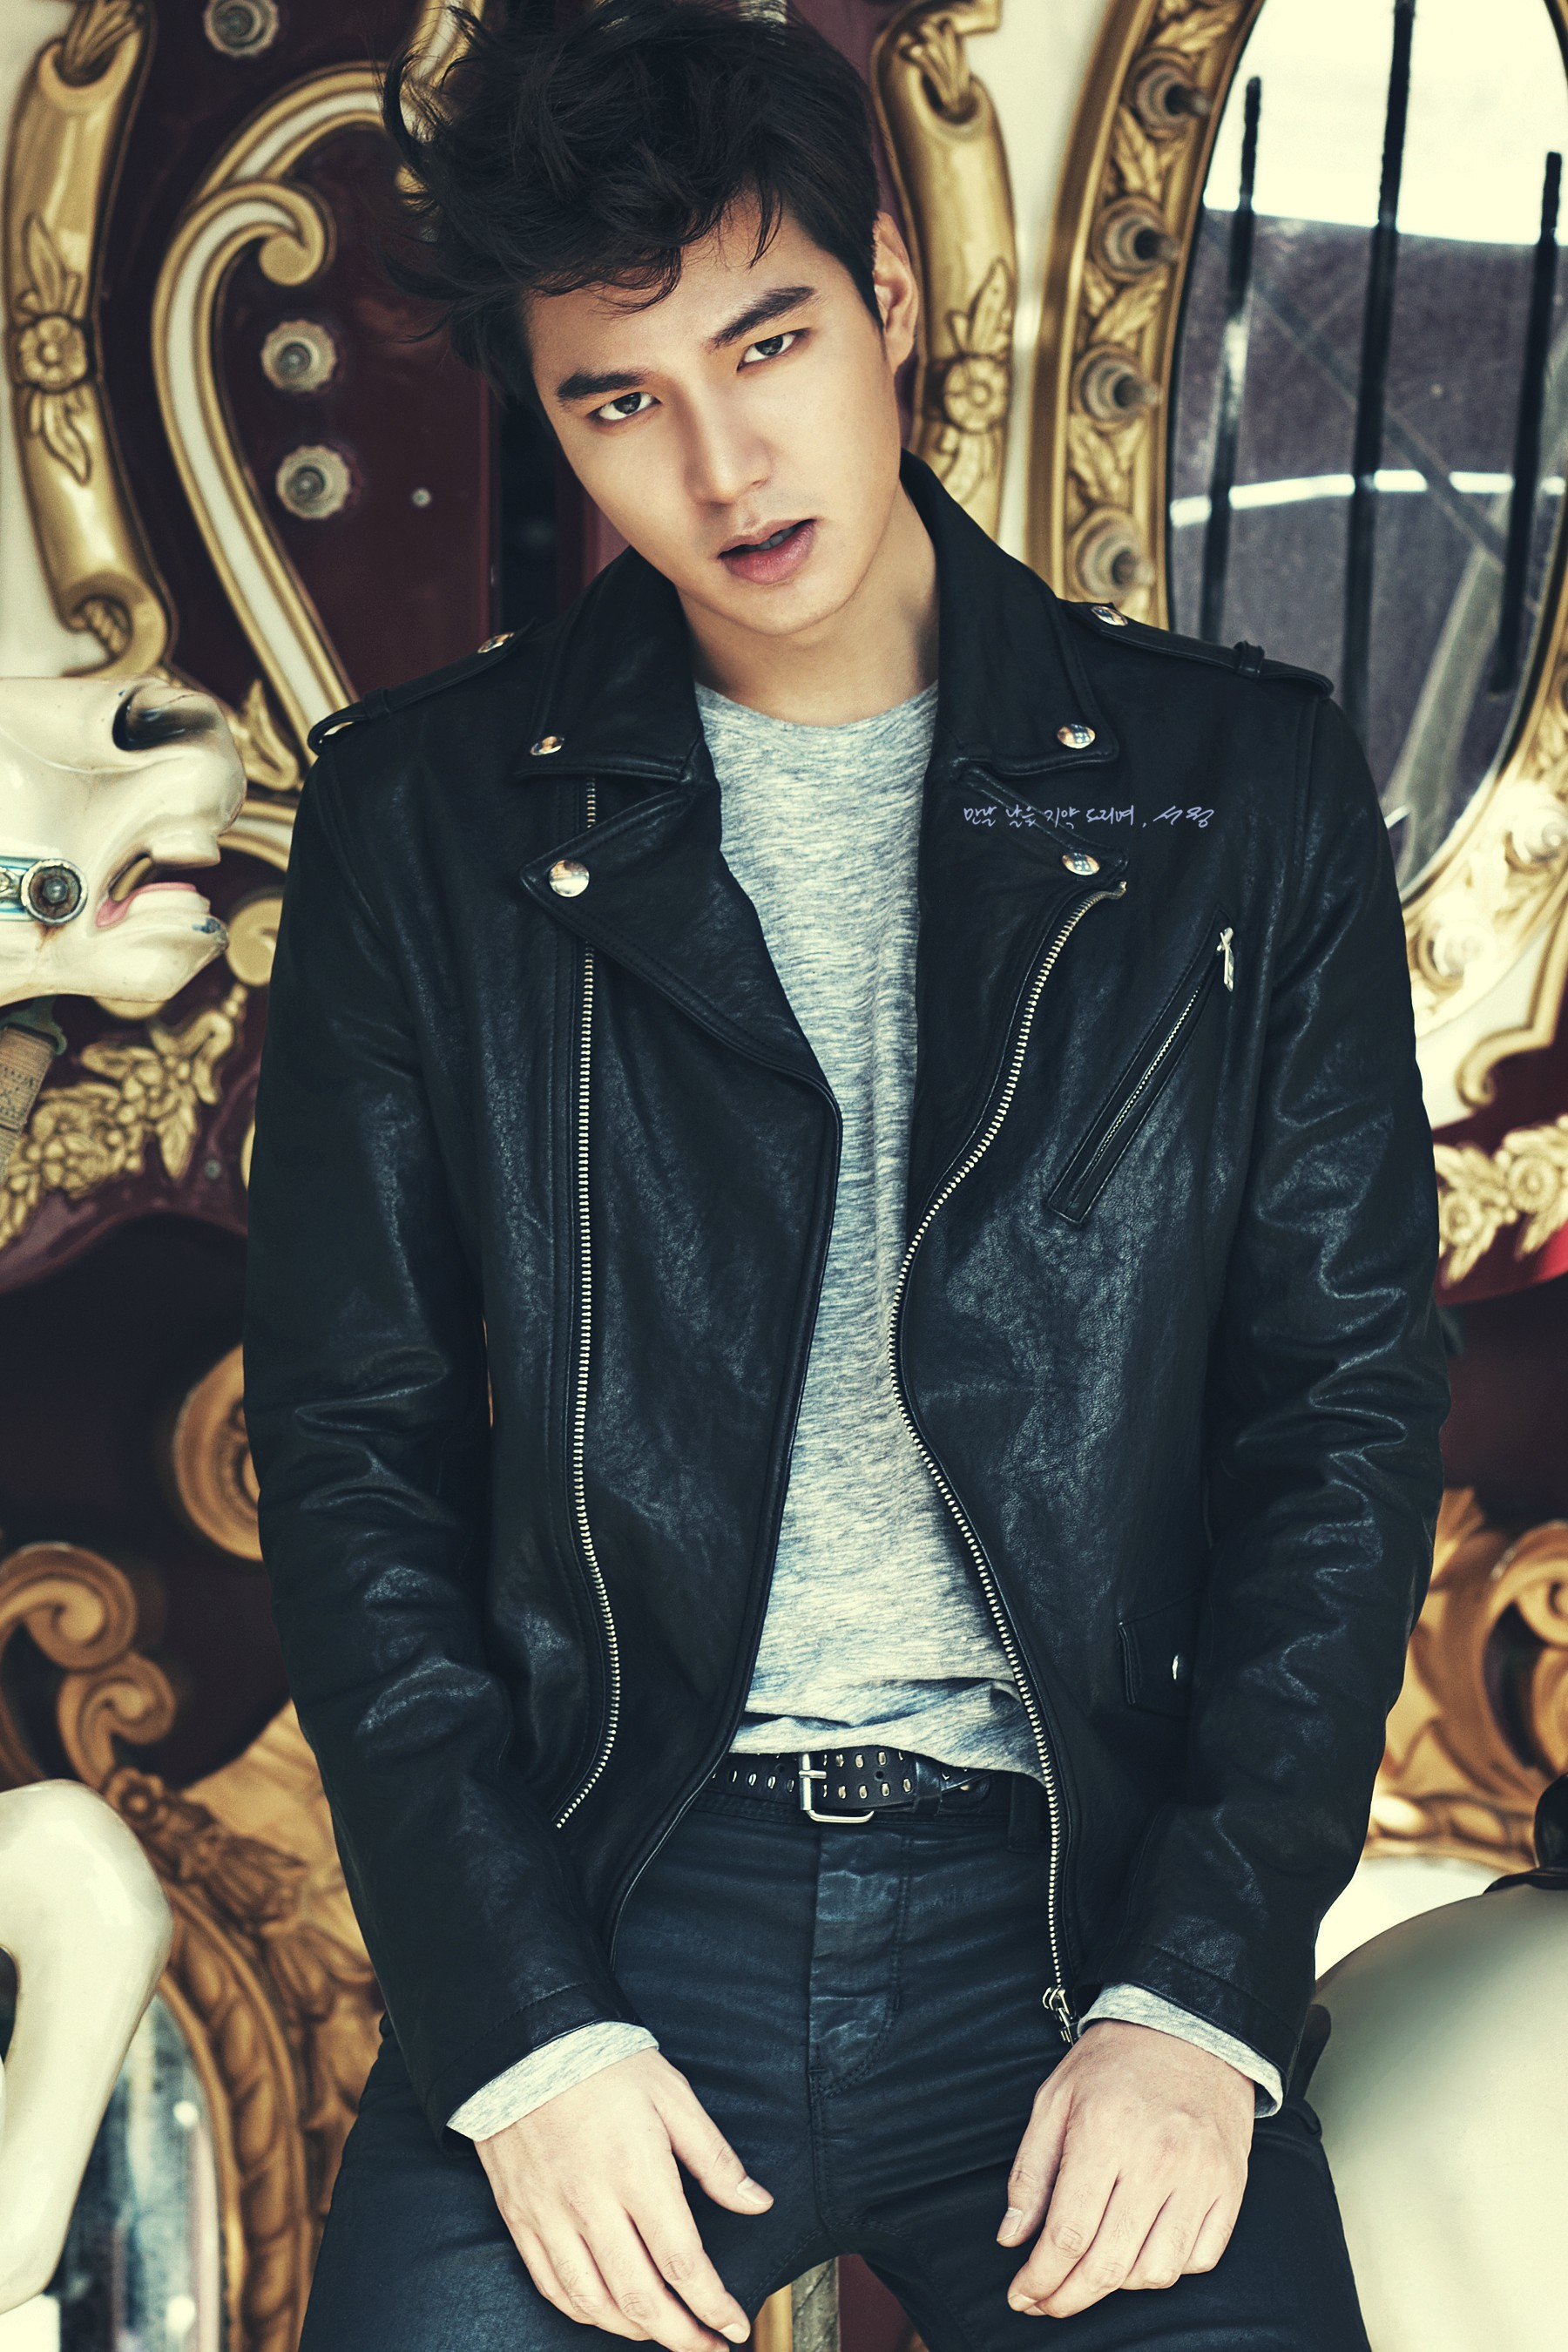 【Scans HD】Lee Min Ho en la Revista High Cut Vol.137